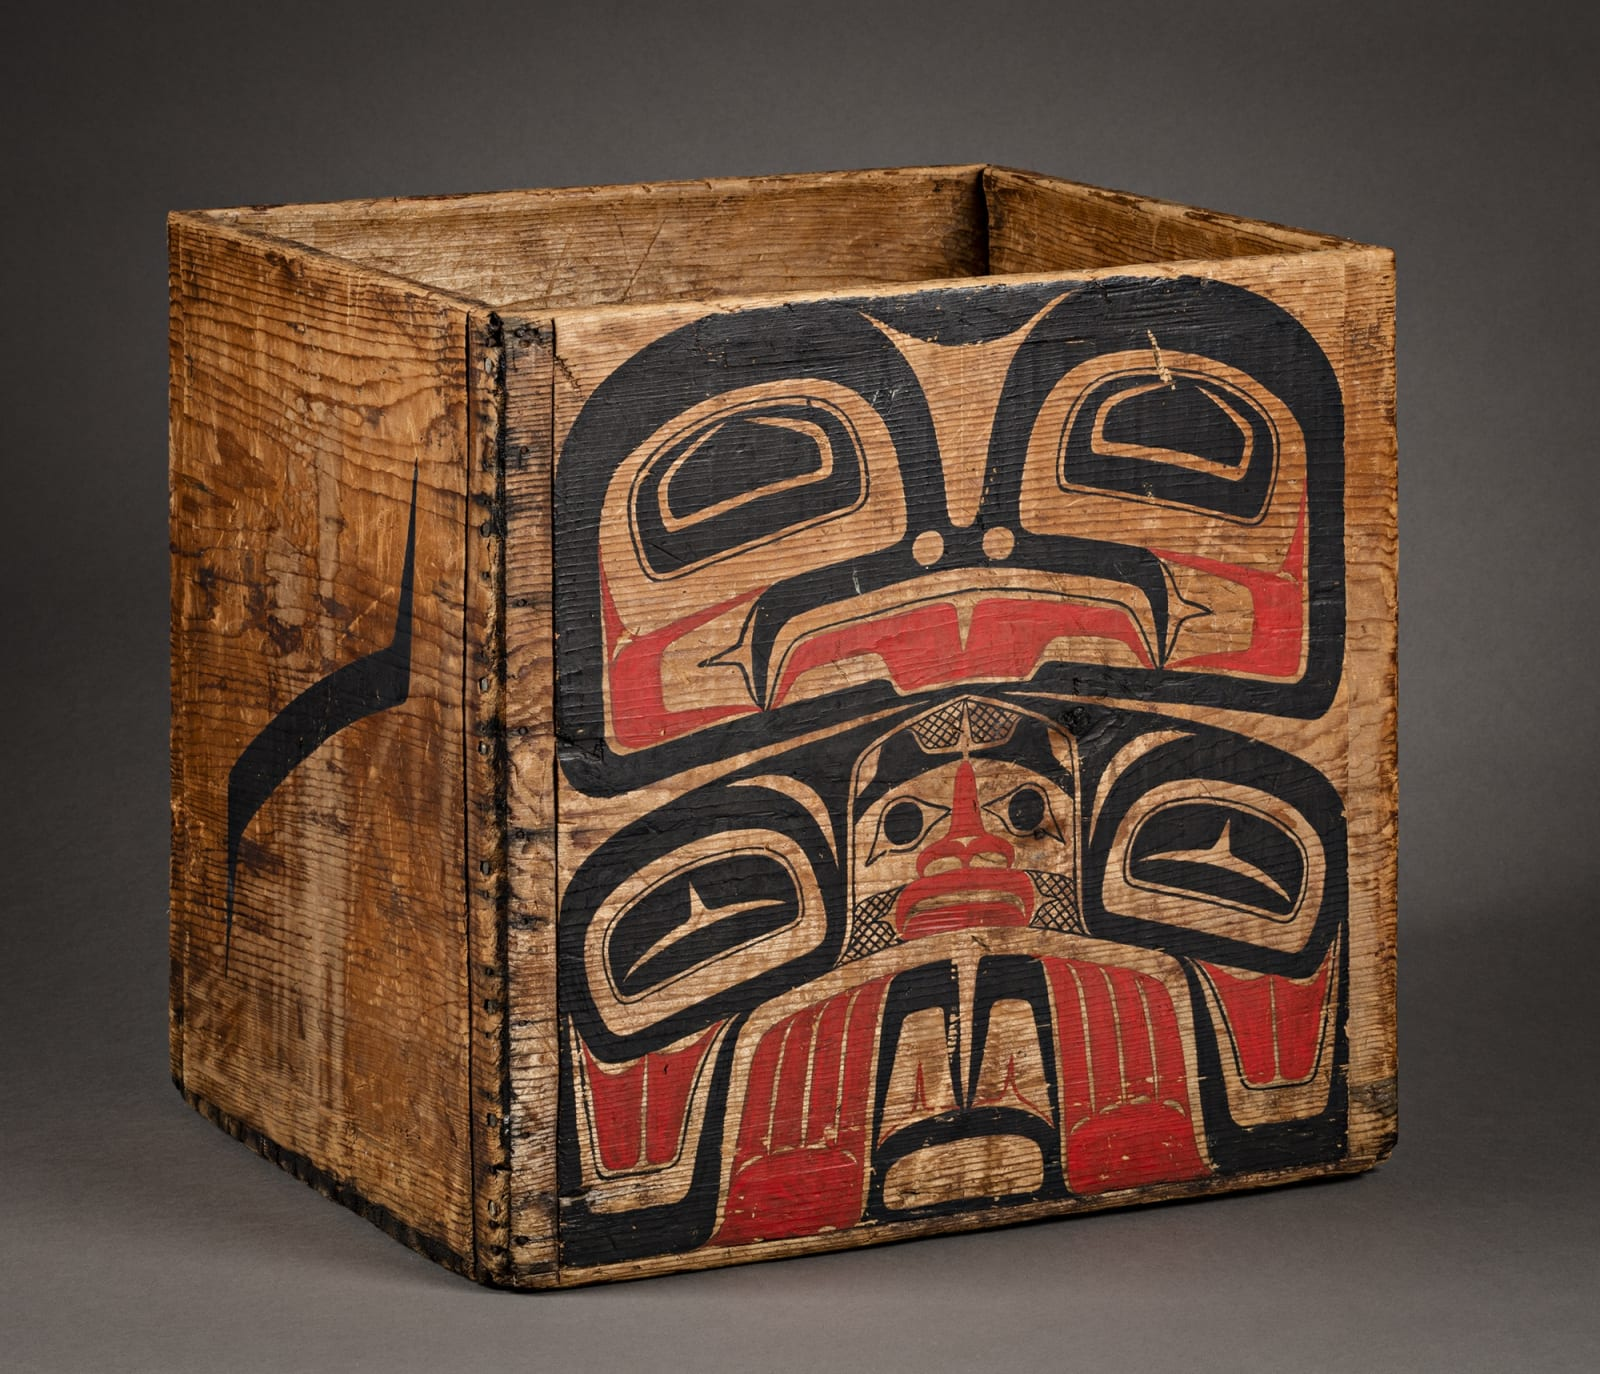 Lot 76 UNIDENTIFIED GITXSAN (GITKSAN) MAKER AND EARL MULDON (MULDOE), O.C. (1936-), GITXSAN (GITKSAN) Bentwood Box, c. late 19th century wood with later added painting by Earl Muldon in 1972, 16 x 14 x 15 in (40.6 x 35.6 x 38.1 cm) Estimate: $2,000— $3,000 Price realized: $2,640